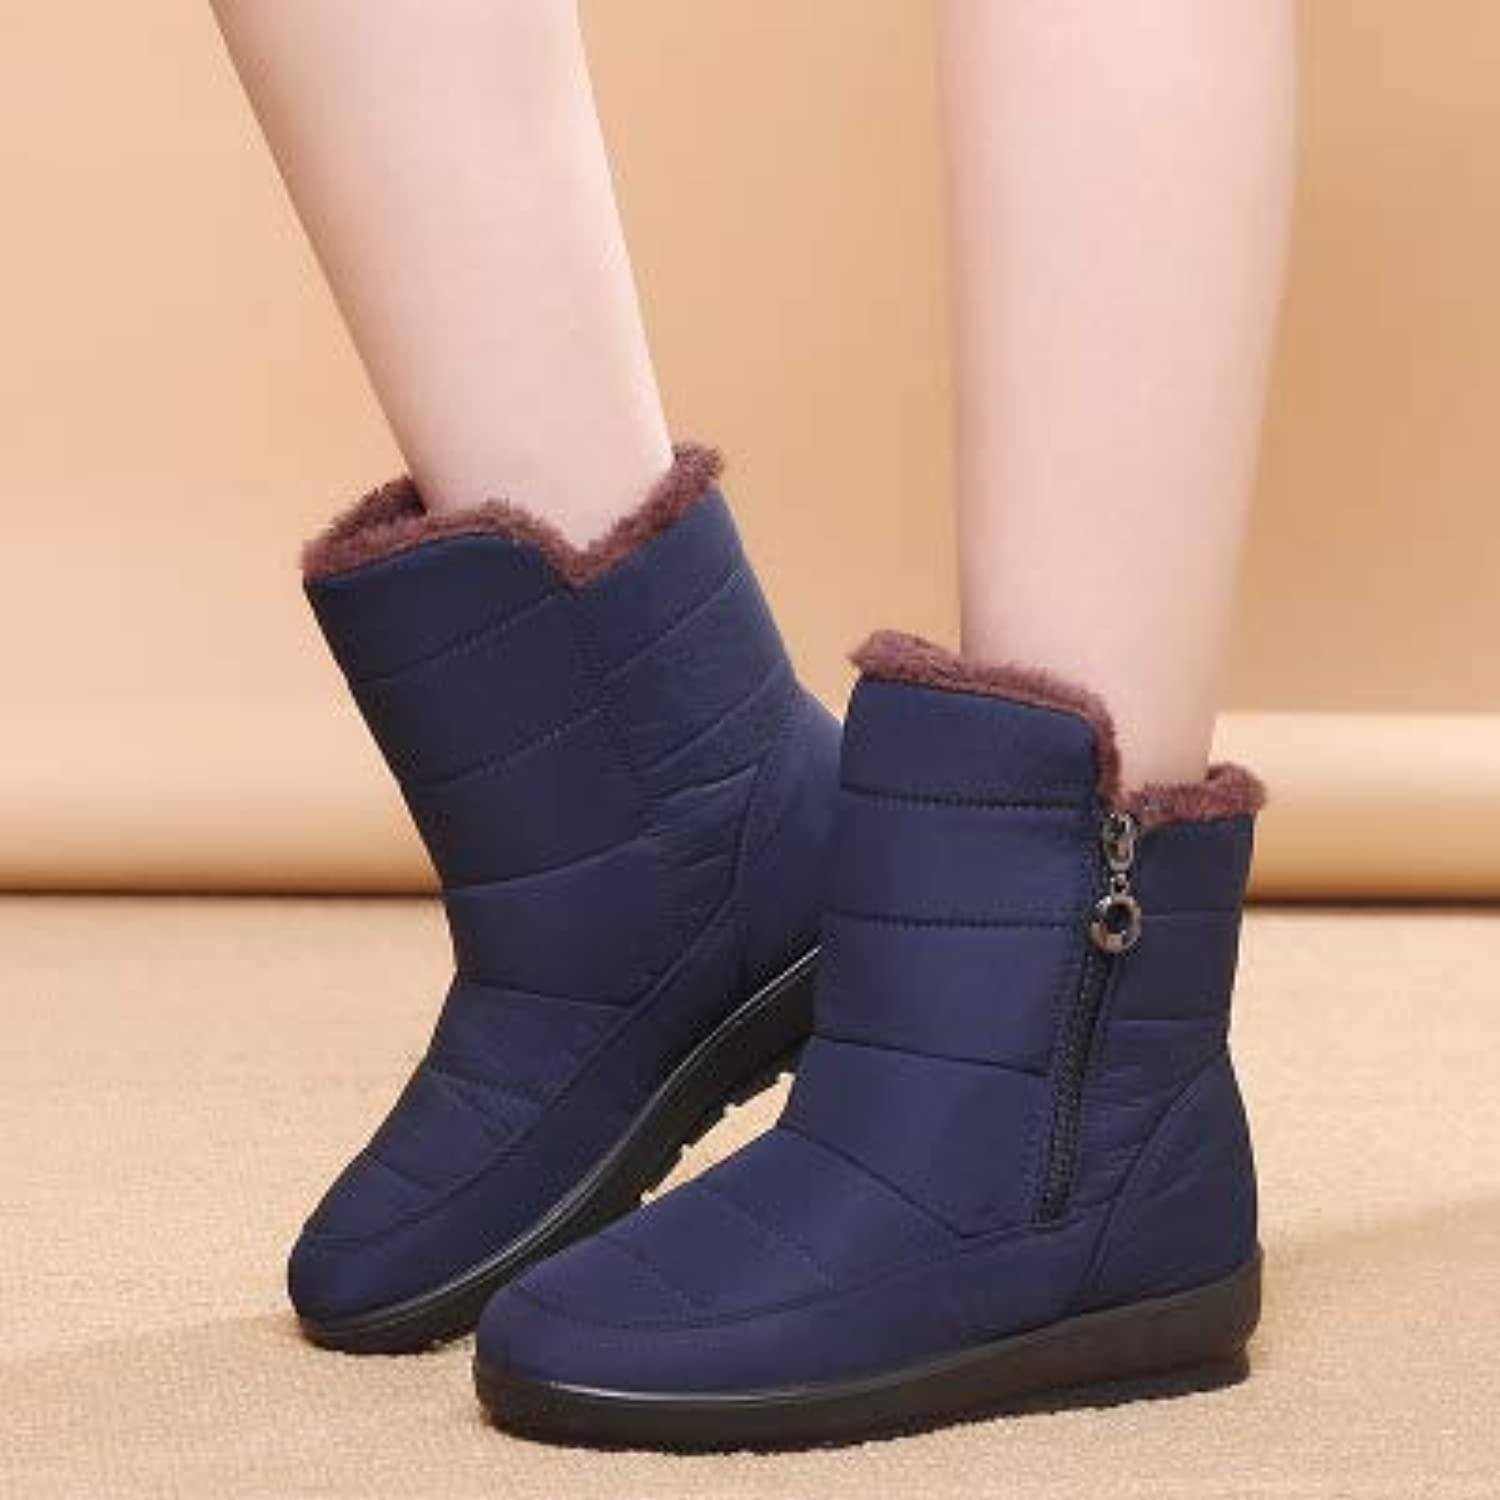 DDL- Snow Boots   Snow Boots Winter Warm Non-Slip Waterproof Women Boots Mother shoes Casual Winter Autumn Boots Female shoes Plus Size 35-42